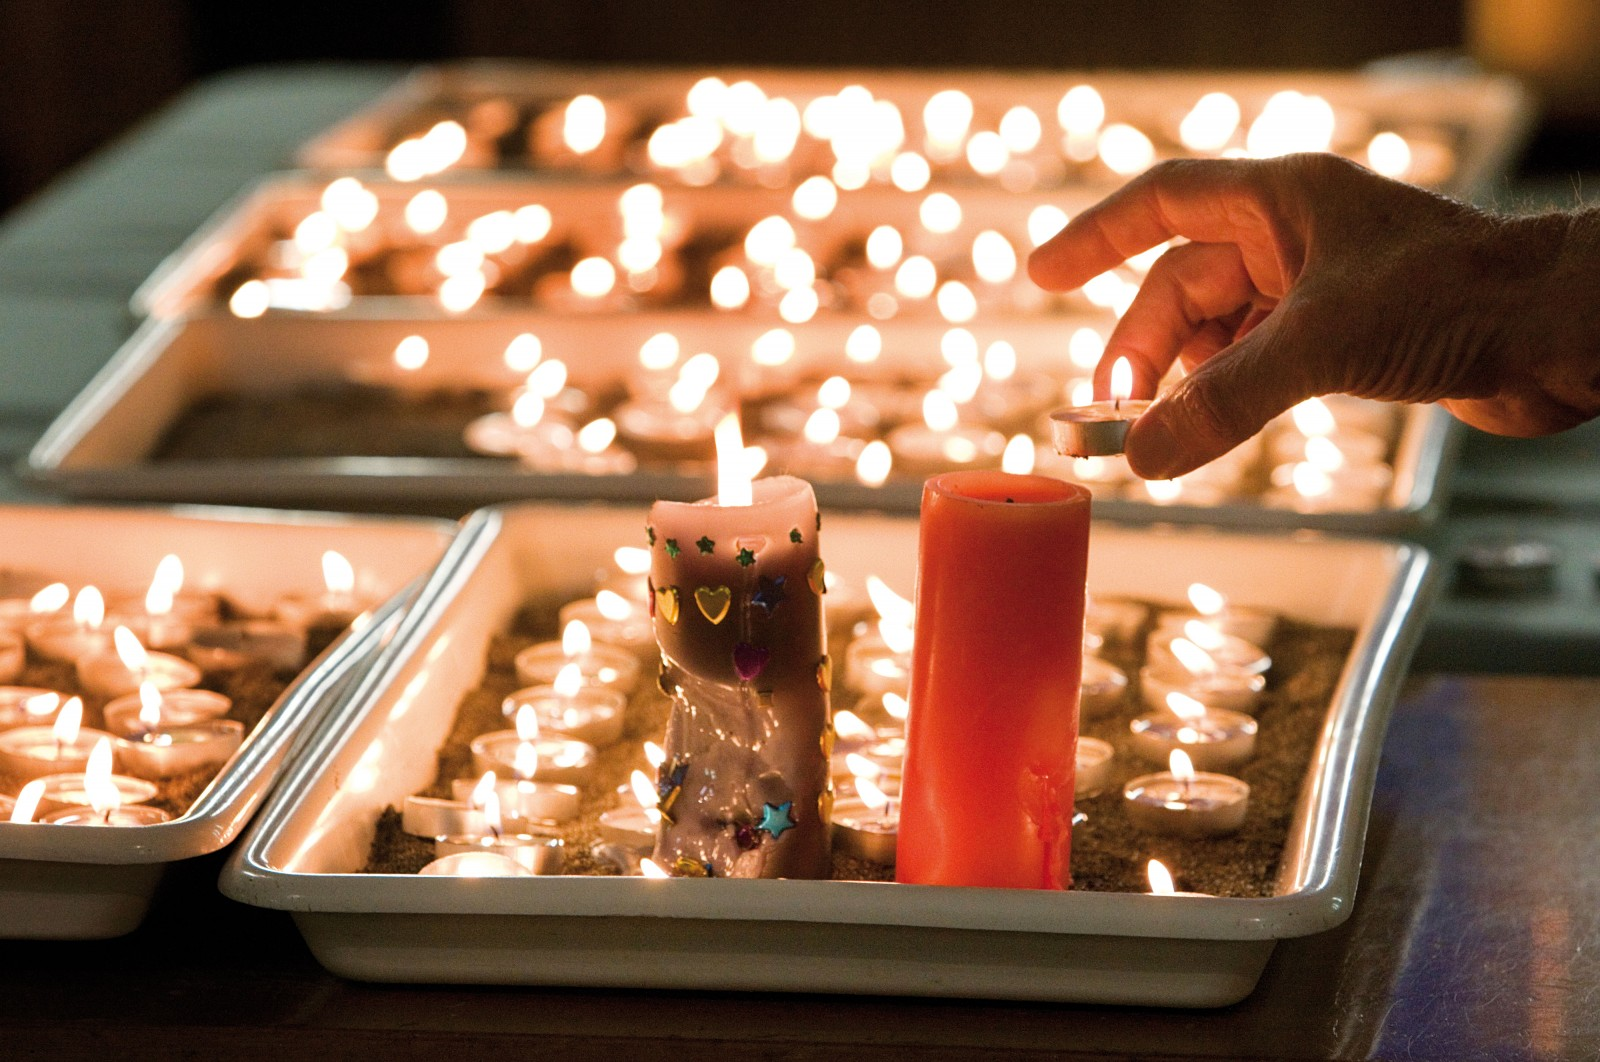 Mourners light candles at a special service at the Holy Trinity Anglican Church in Greymouth following the news of a second explosion in the Pike River mine on November 24.